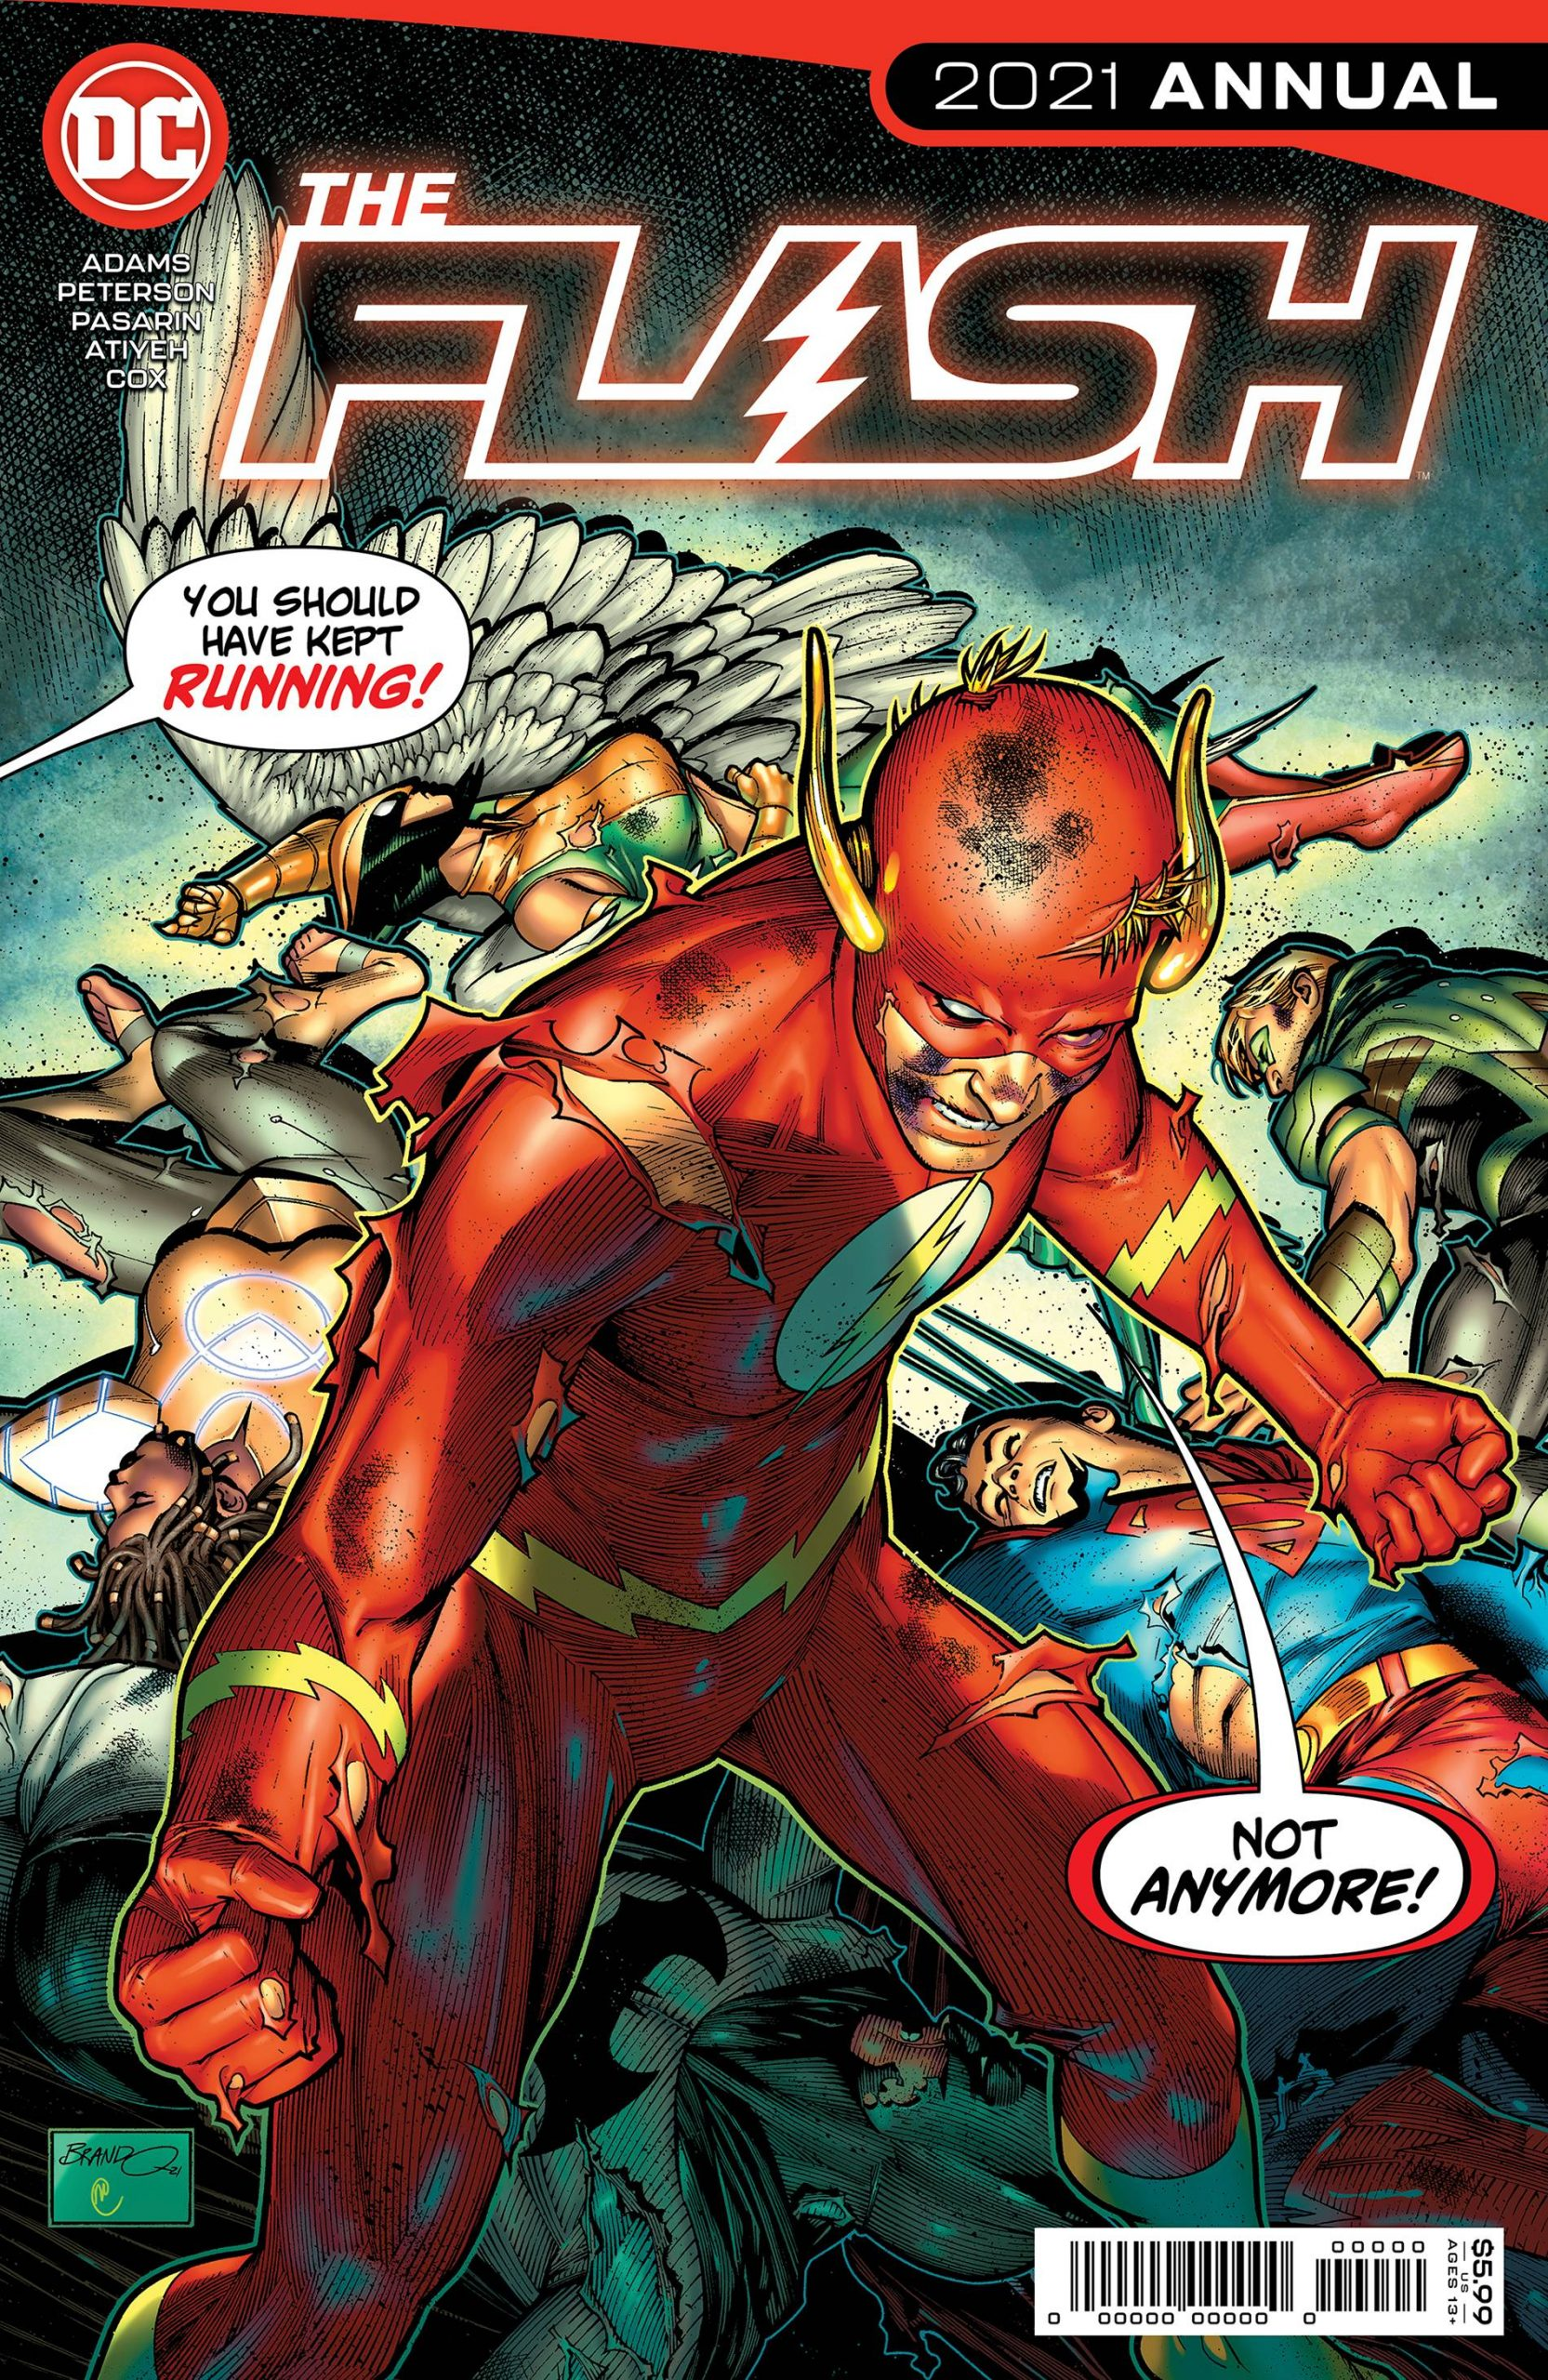 The-Flash-2021-Annual-1-spoilers-0-1-scaled-1